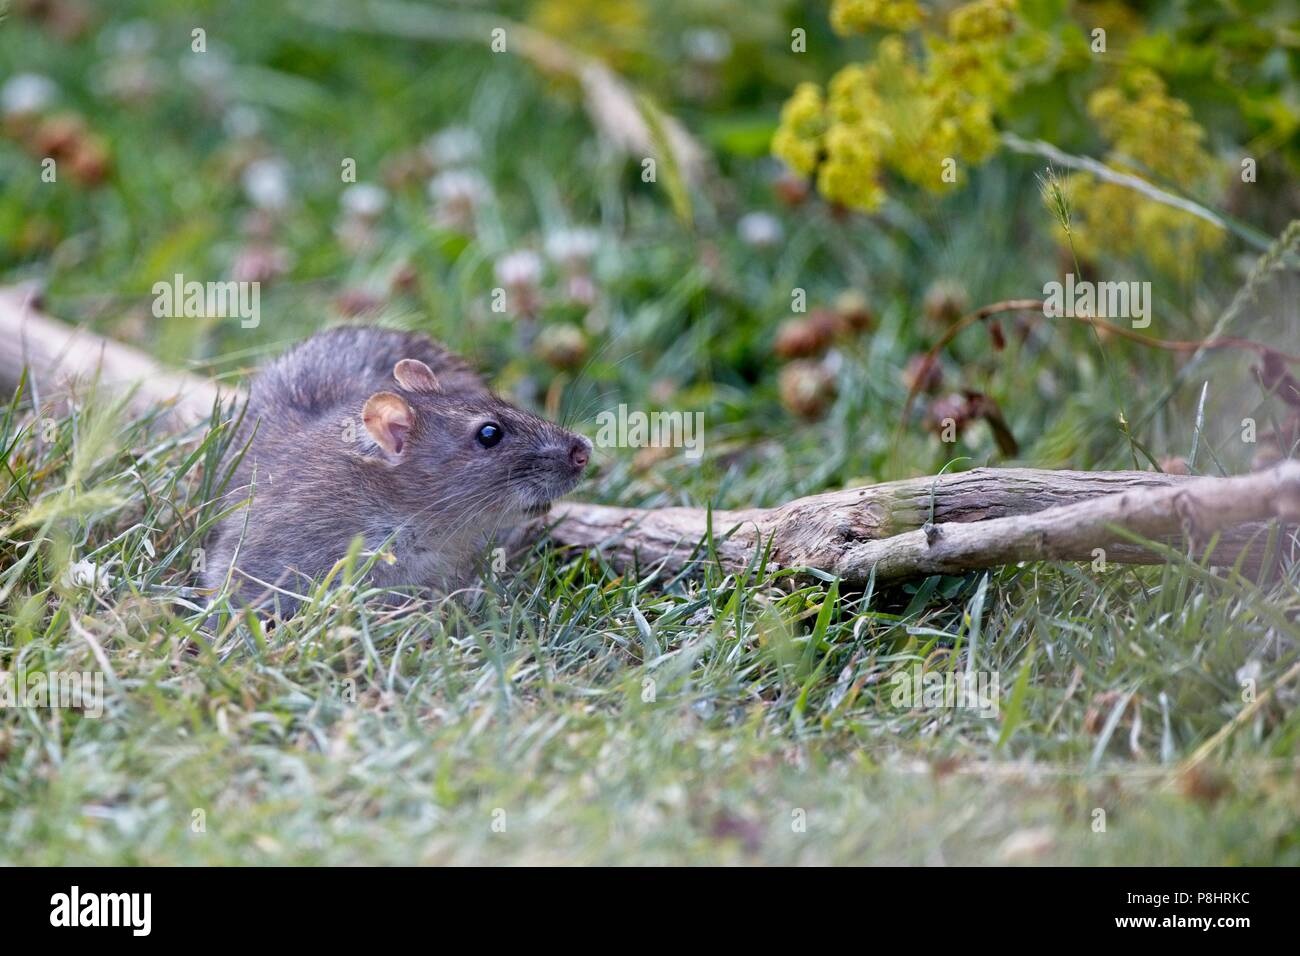 Brown rat (Rattus norvegicus) also known as a Common rat, East Sussex, UK - Stock Image